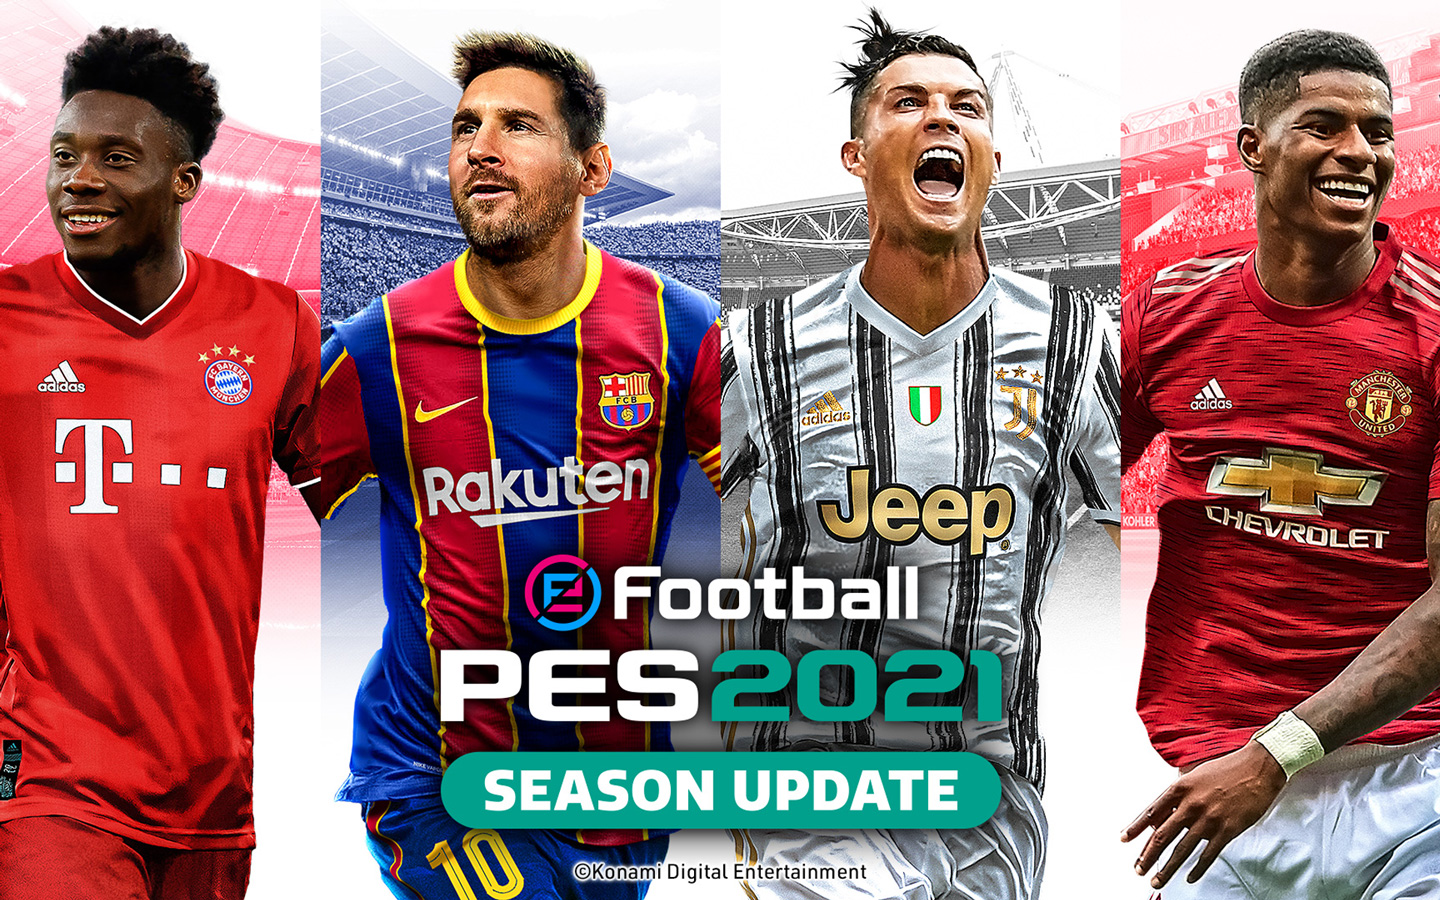 Free eFootball PES 2021 Wallpaper in 1440x900